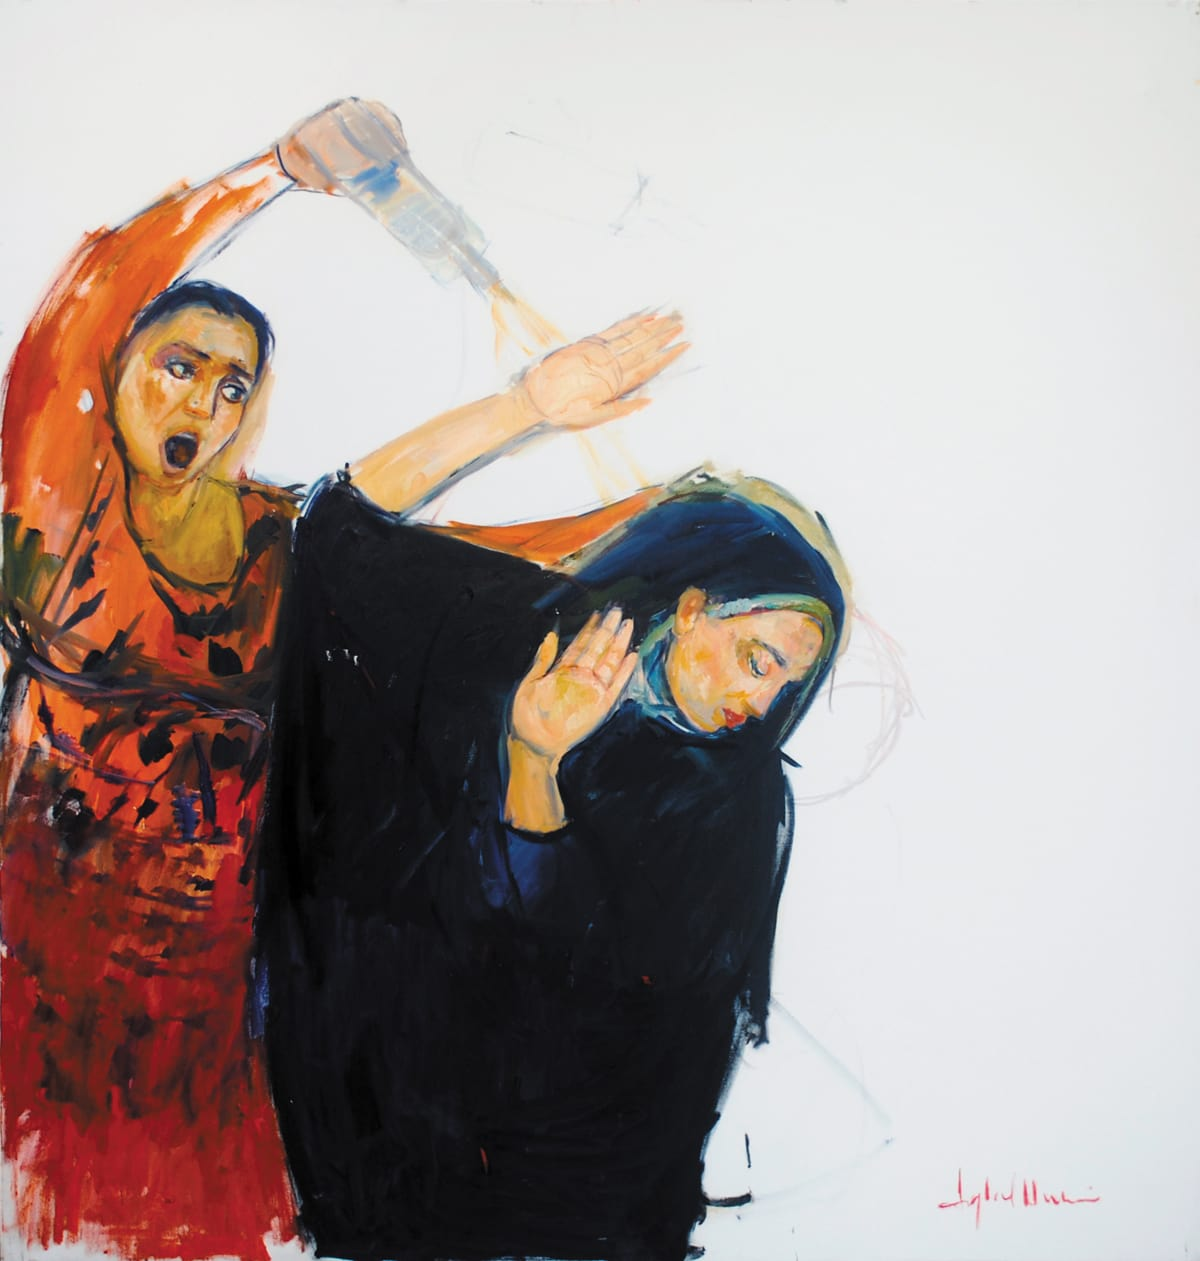 Iqbal Hussain,  Untitled,  Oil on Canvas, 54 x 60, Courtesy of Clifton Gallery